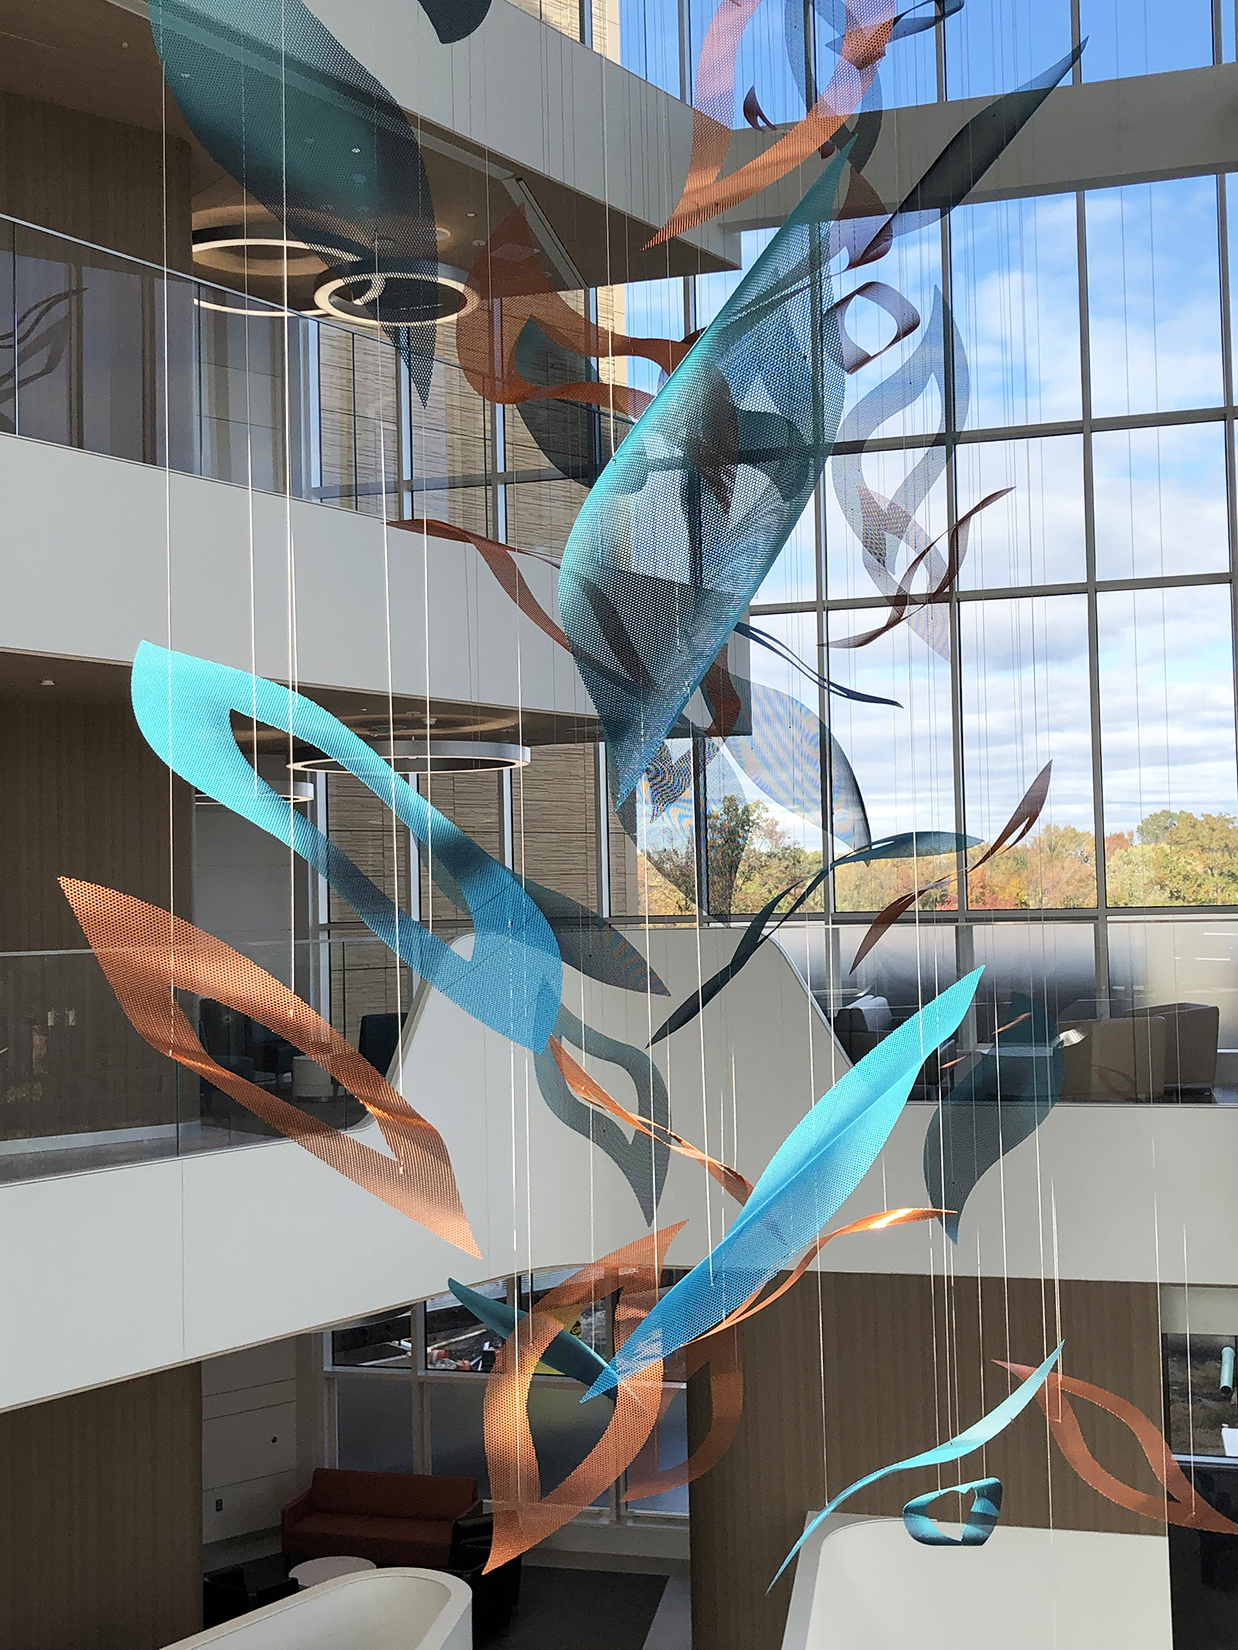 Bright blue and copper petals catch the light in Talley Fisher's Nature's Symphony atrium sculpture.